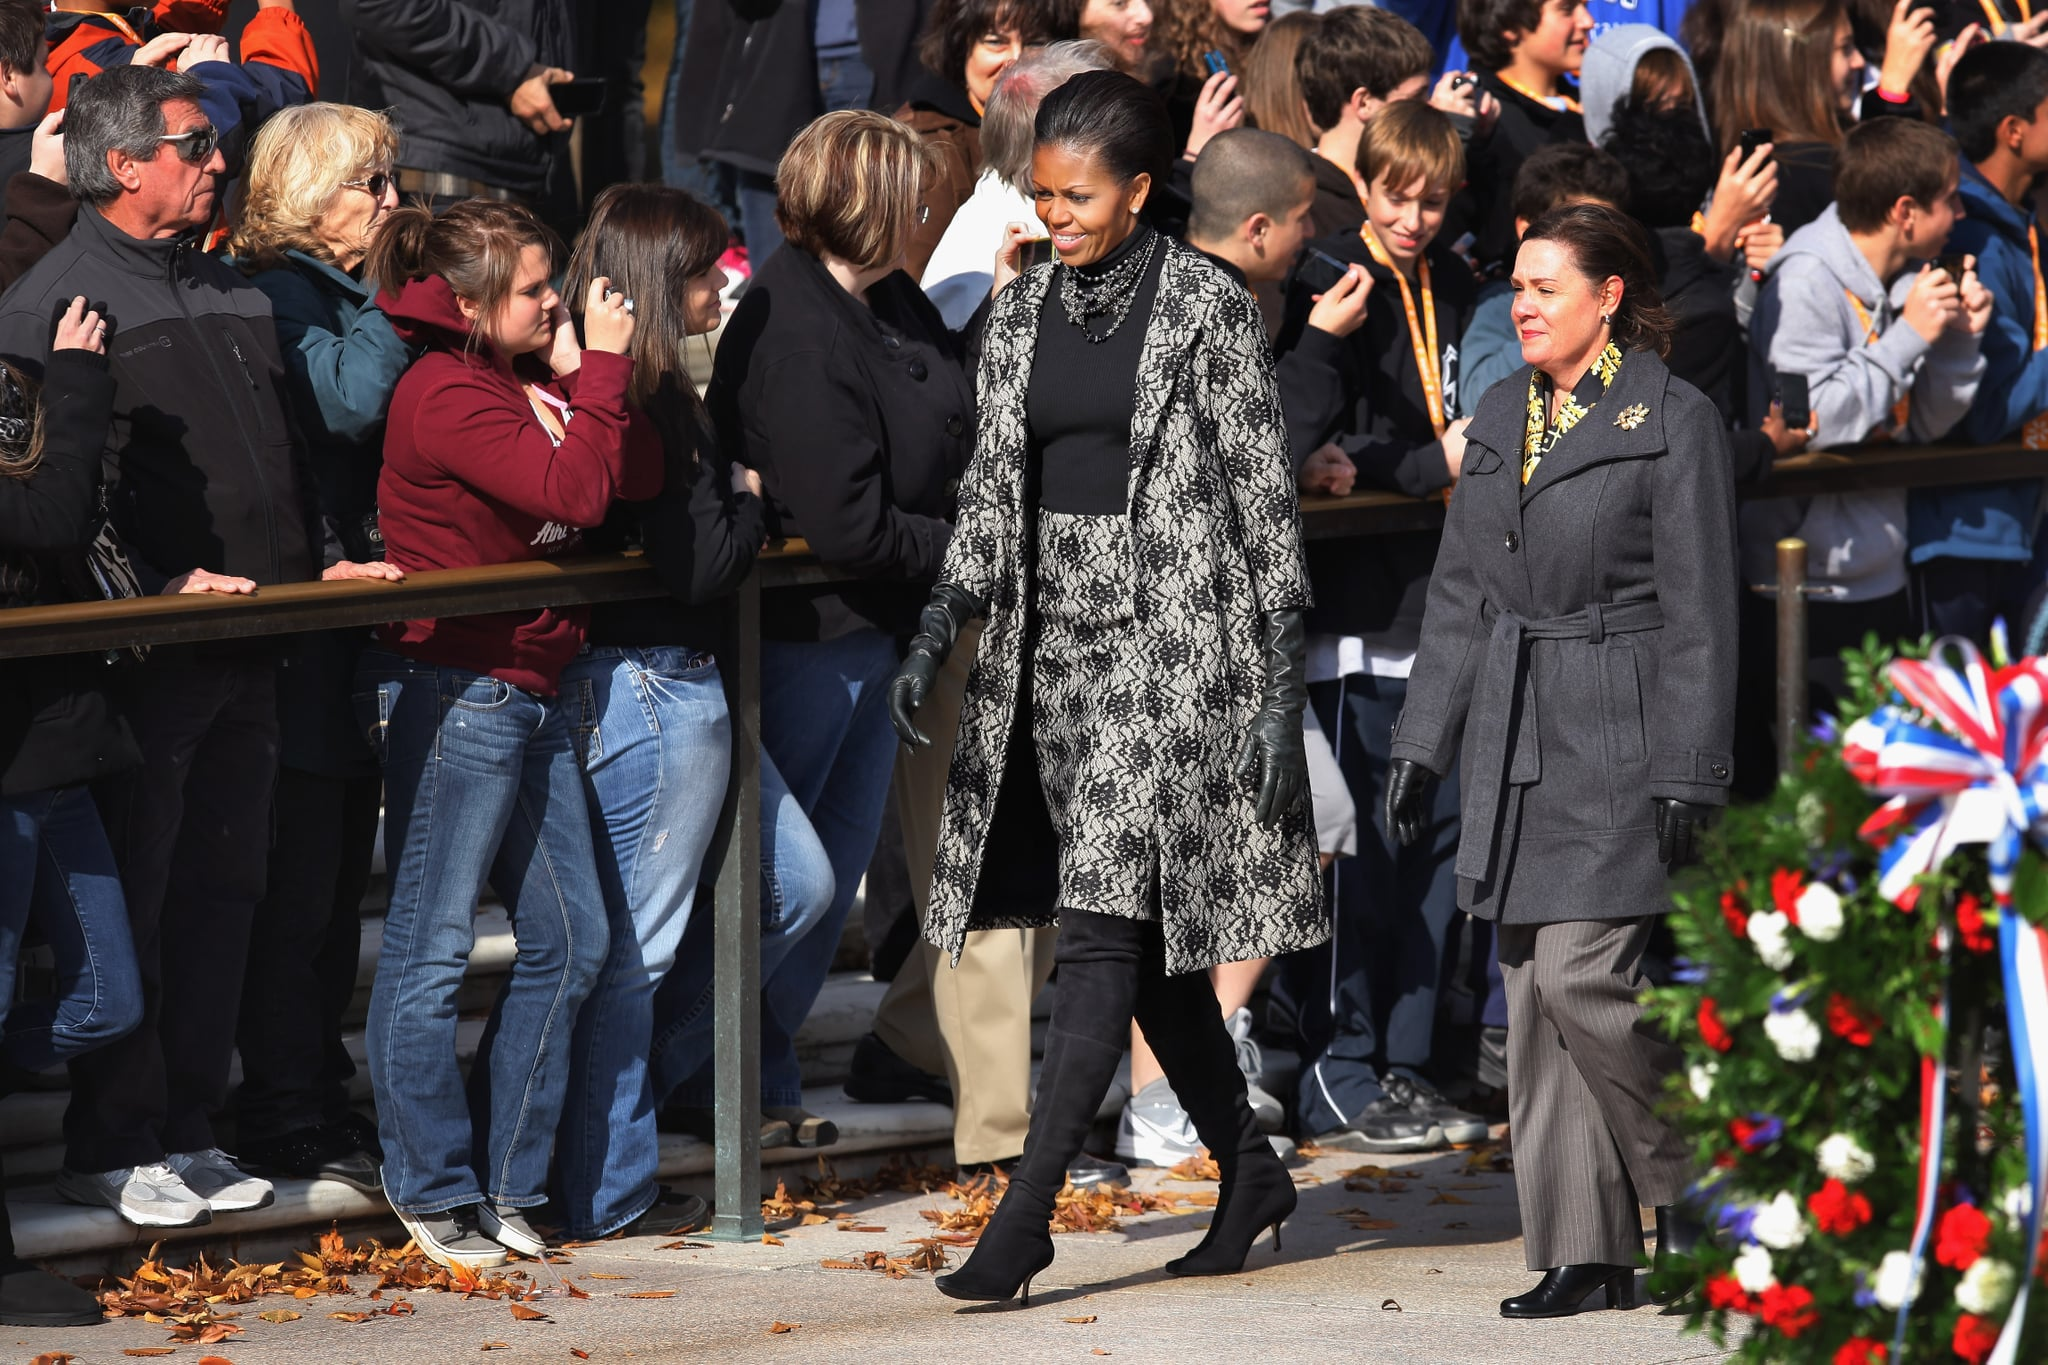 Michelle looked ultrachic in a black-and-gray printed coat and skirt on a cold DC day. She added knee-high black boots to finish off the look.